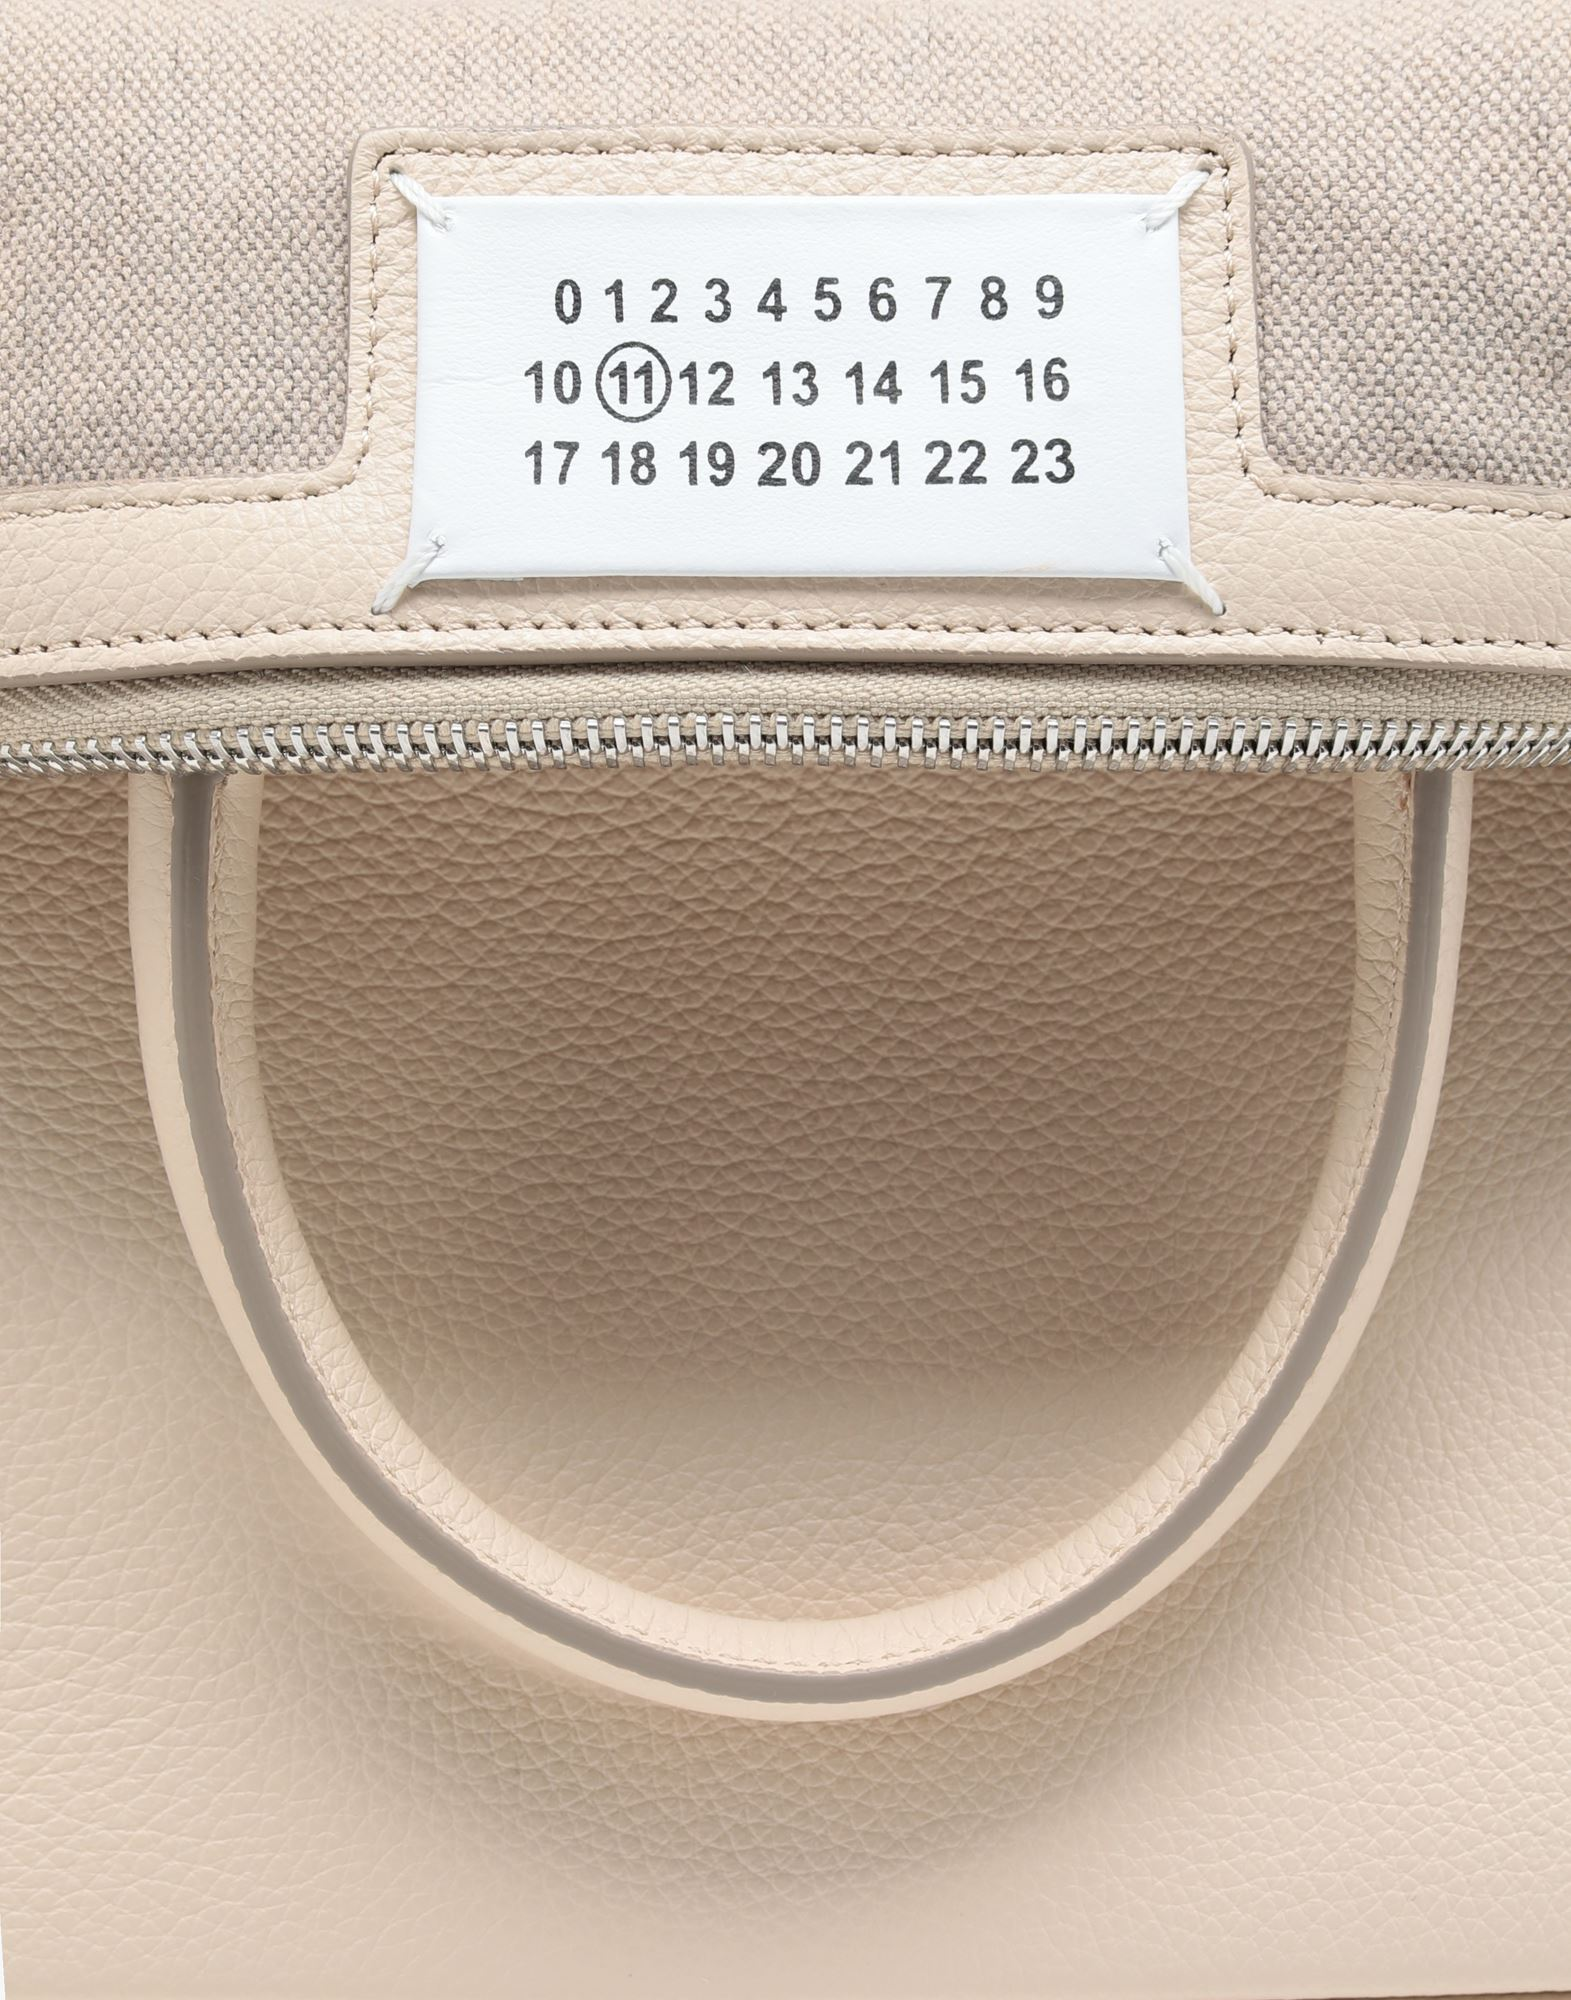 MAISON MARGIELA 5AC Mini Bag Handbag Woman e